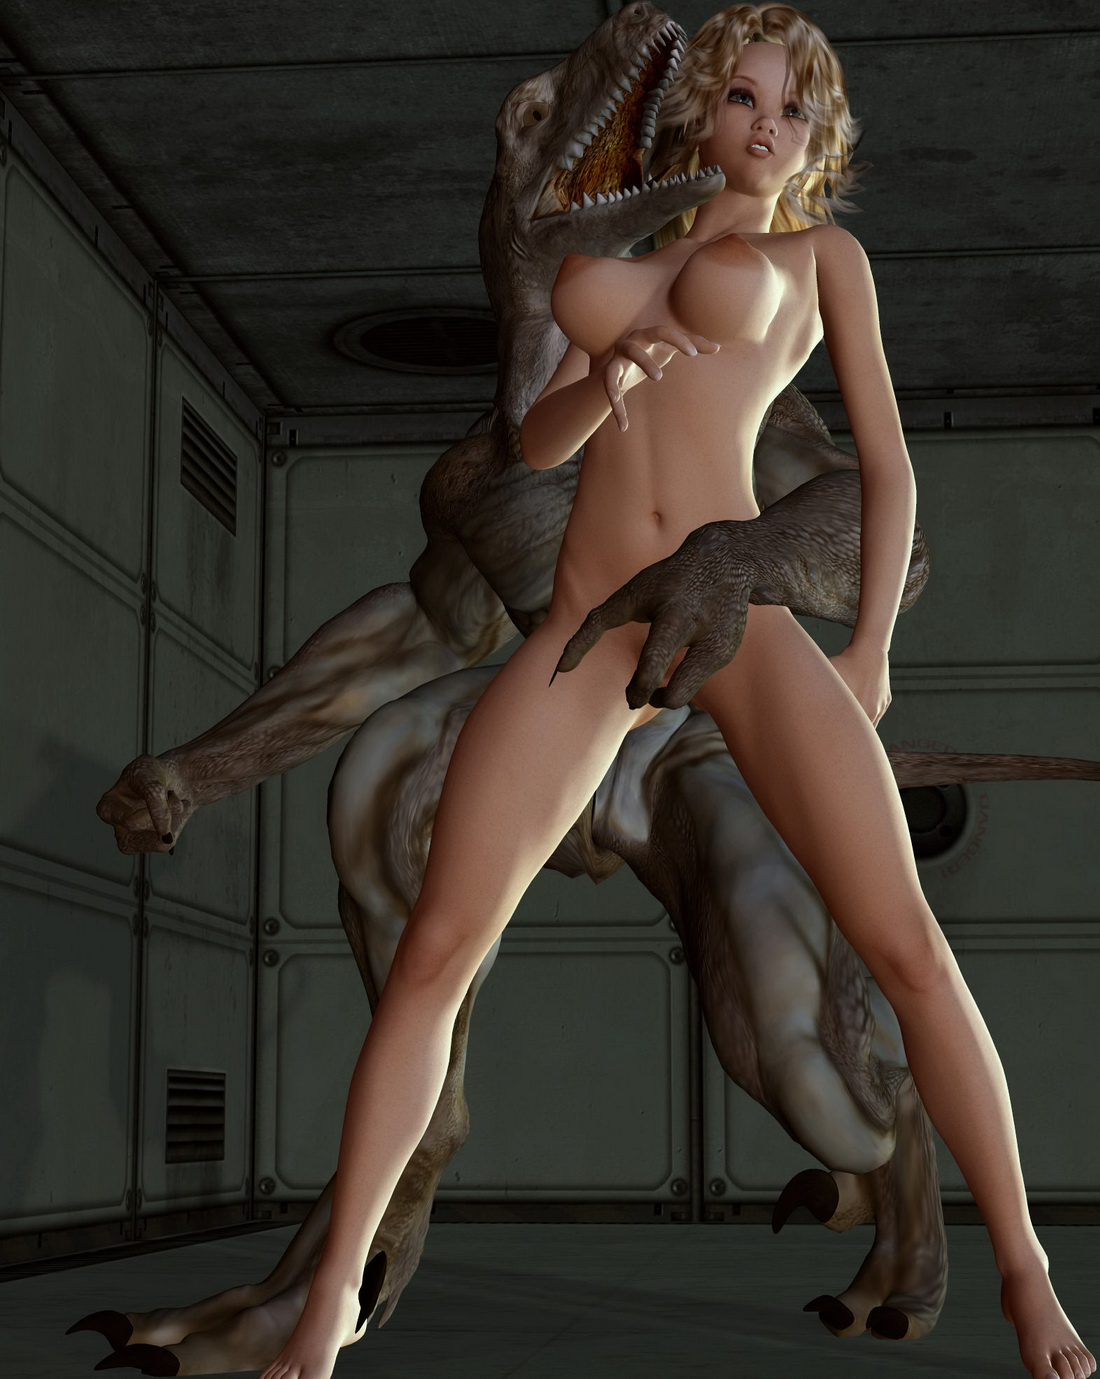 Salope Free 3d hentai monster porn has absolutely